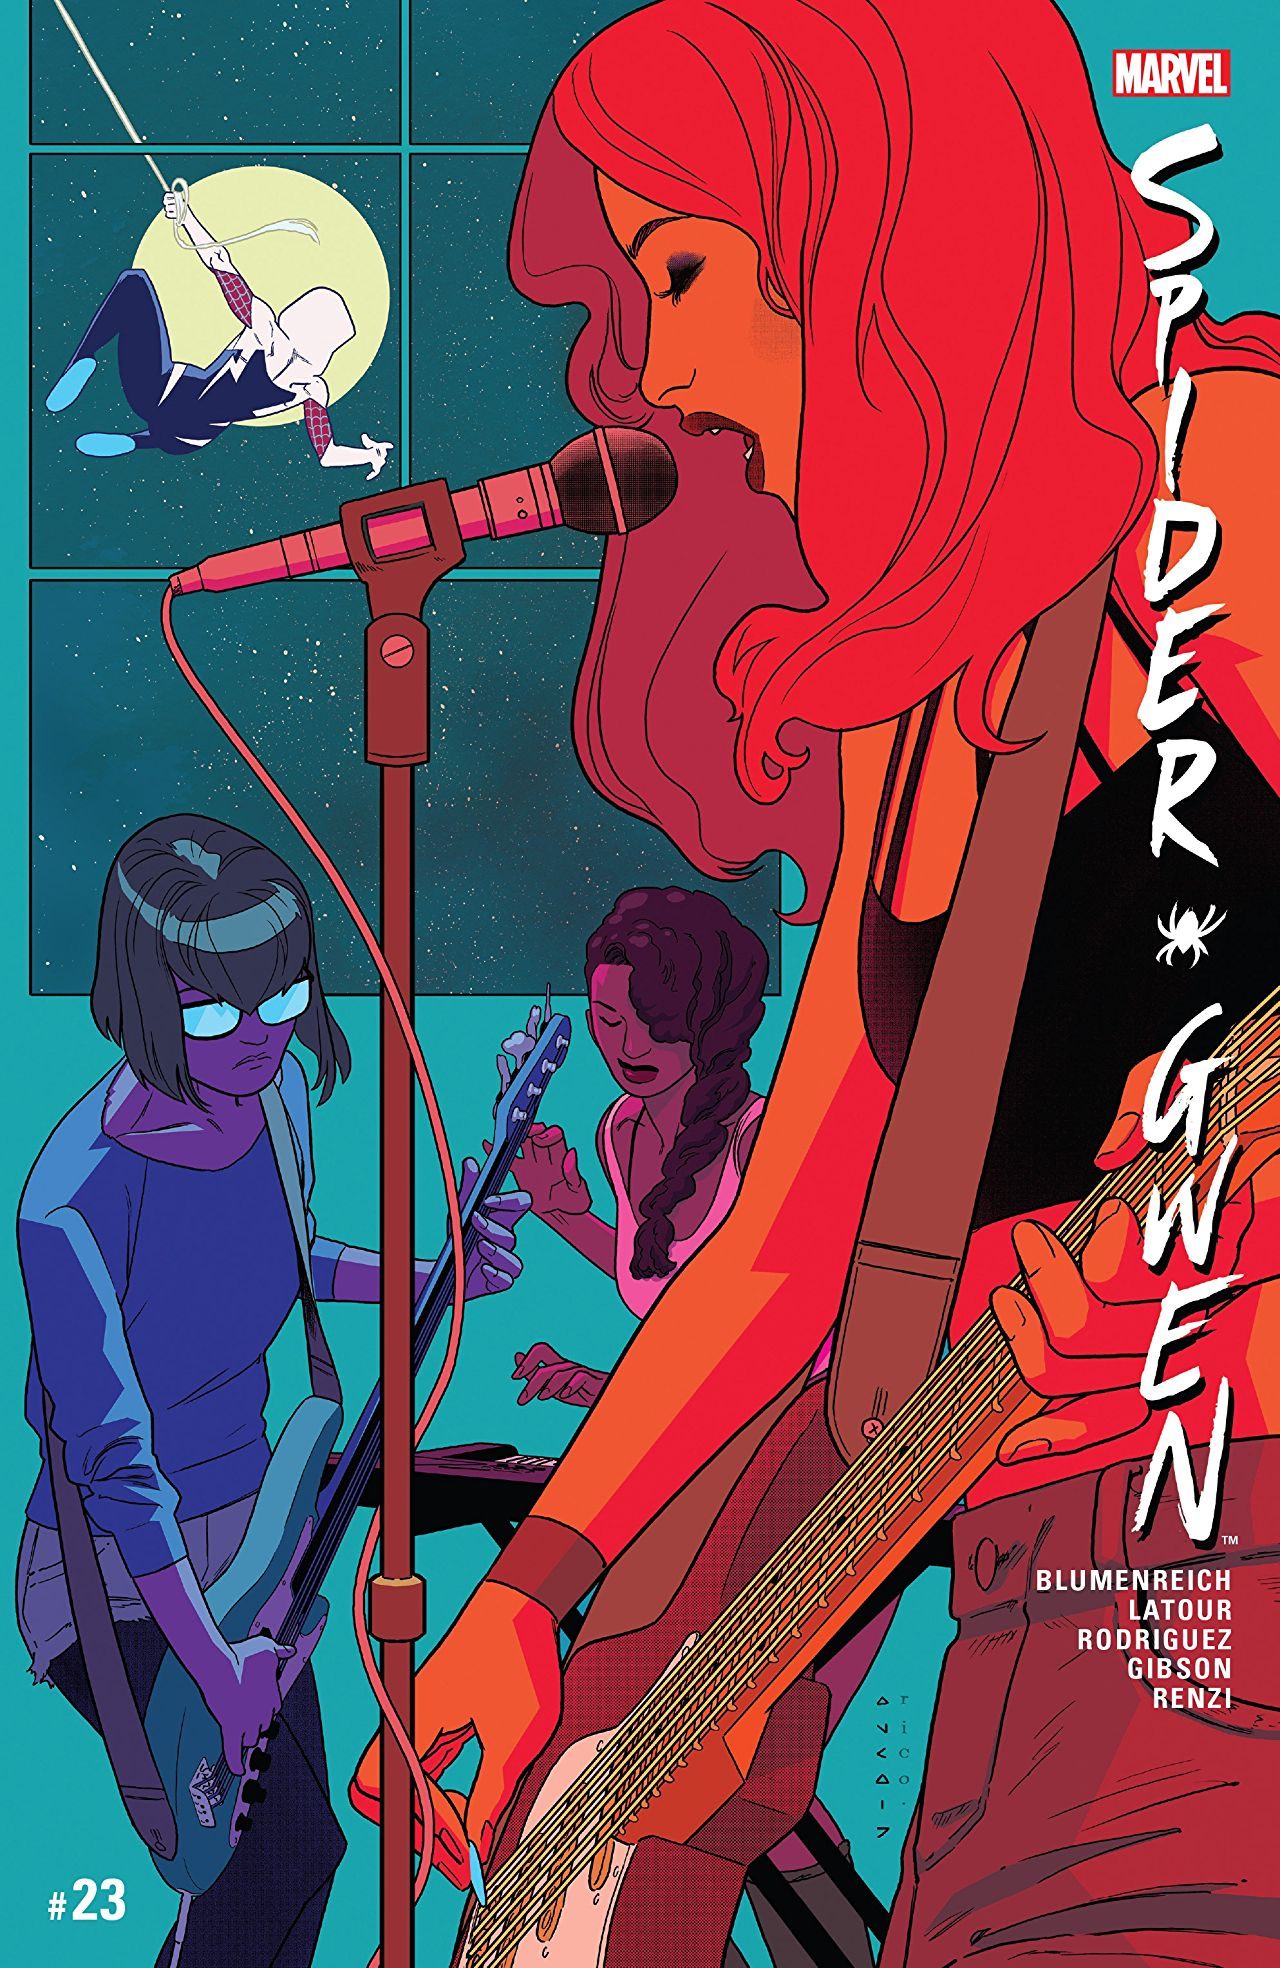 Spider-Gwen #23 Review